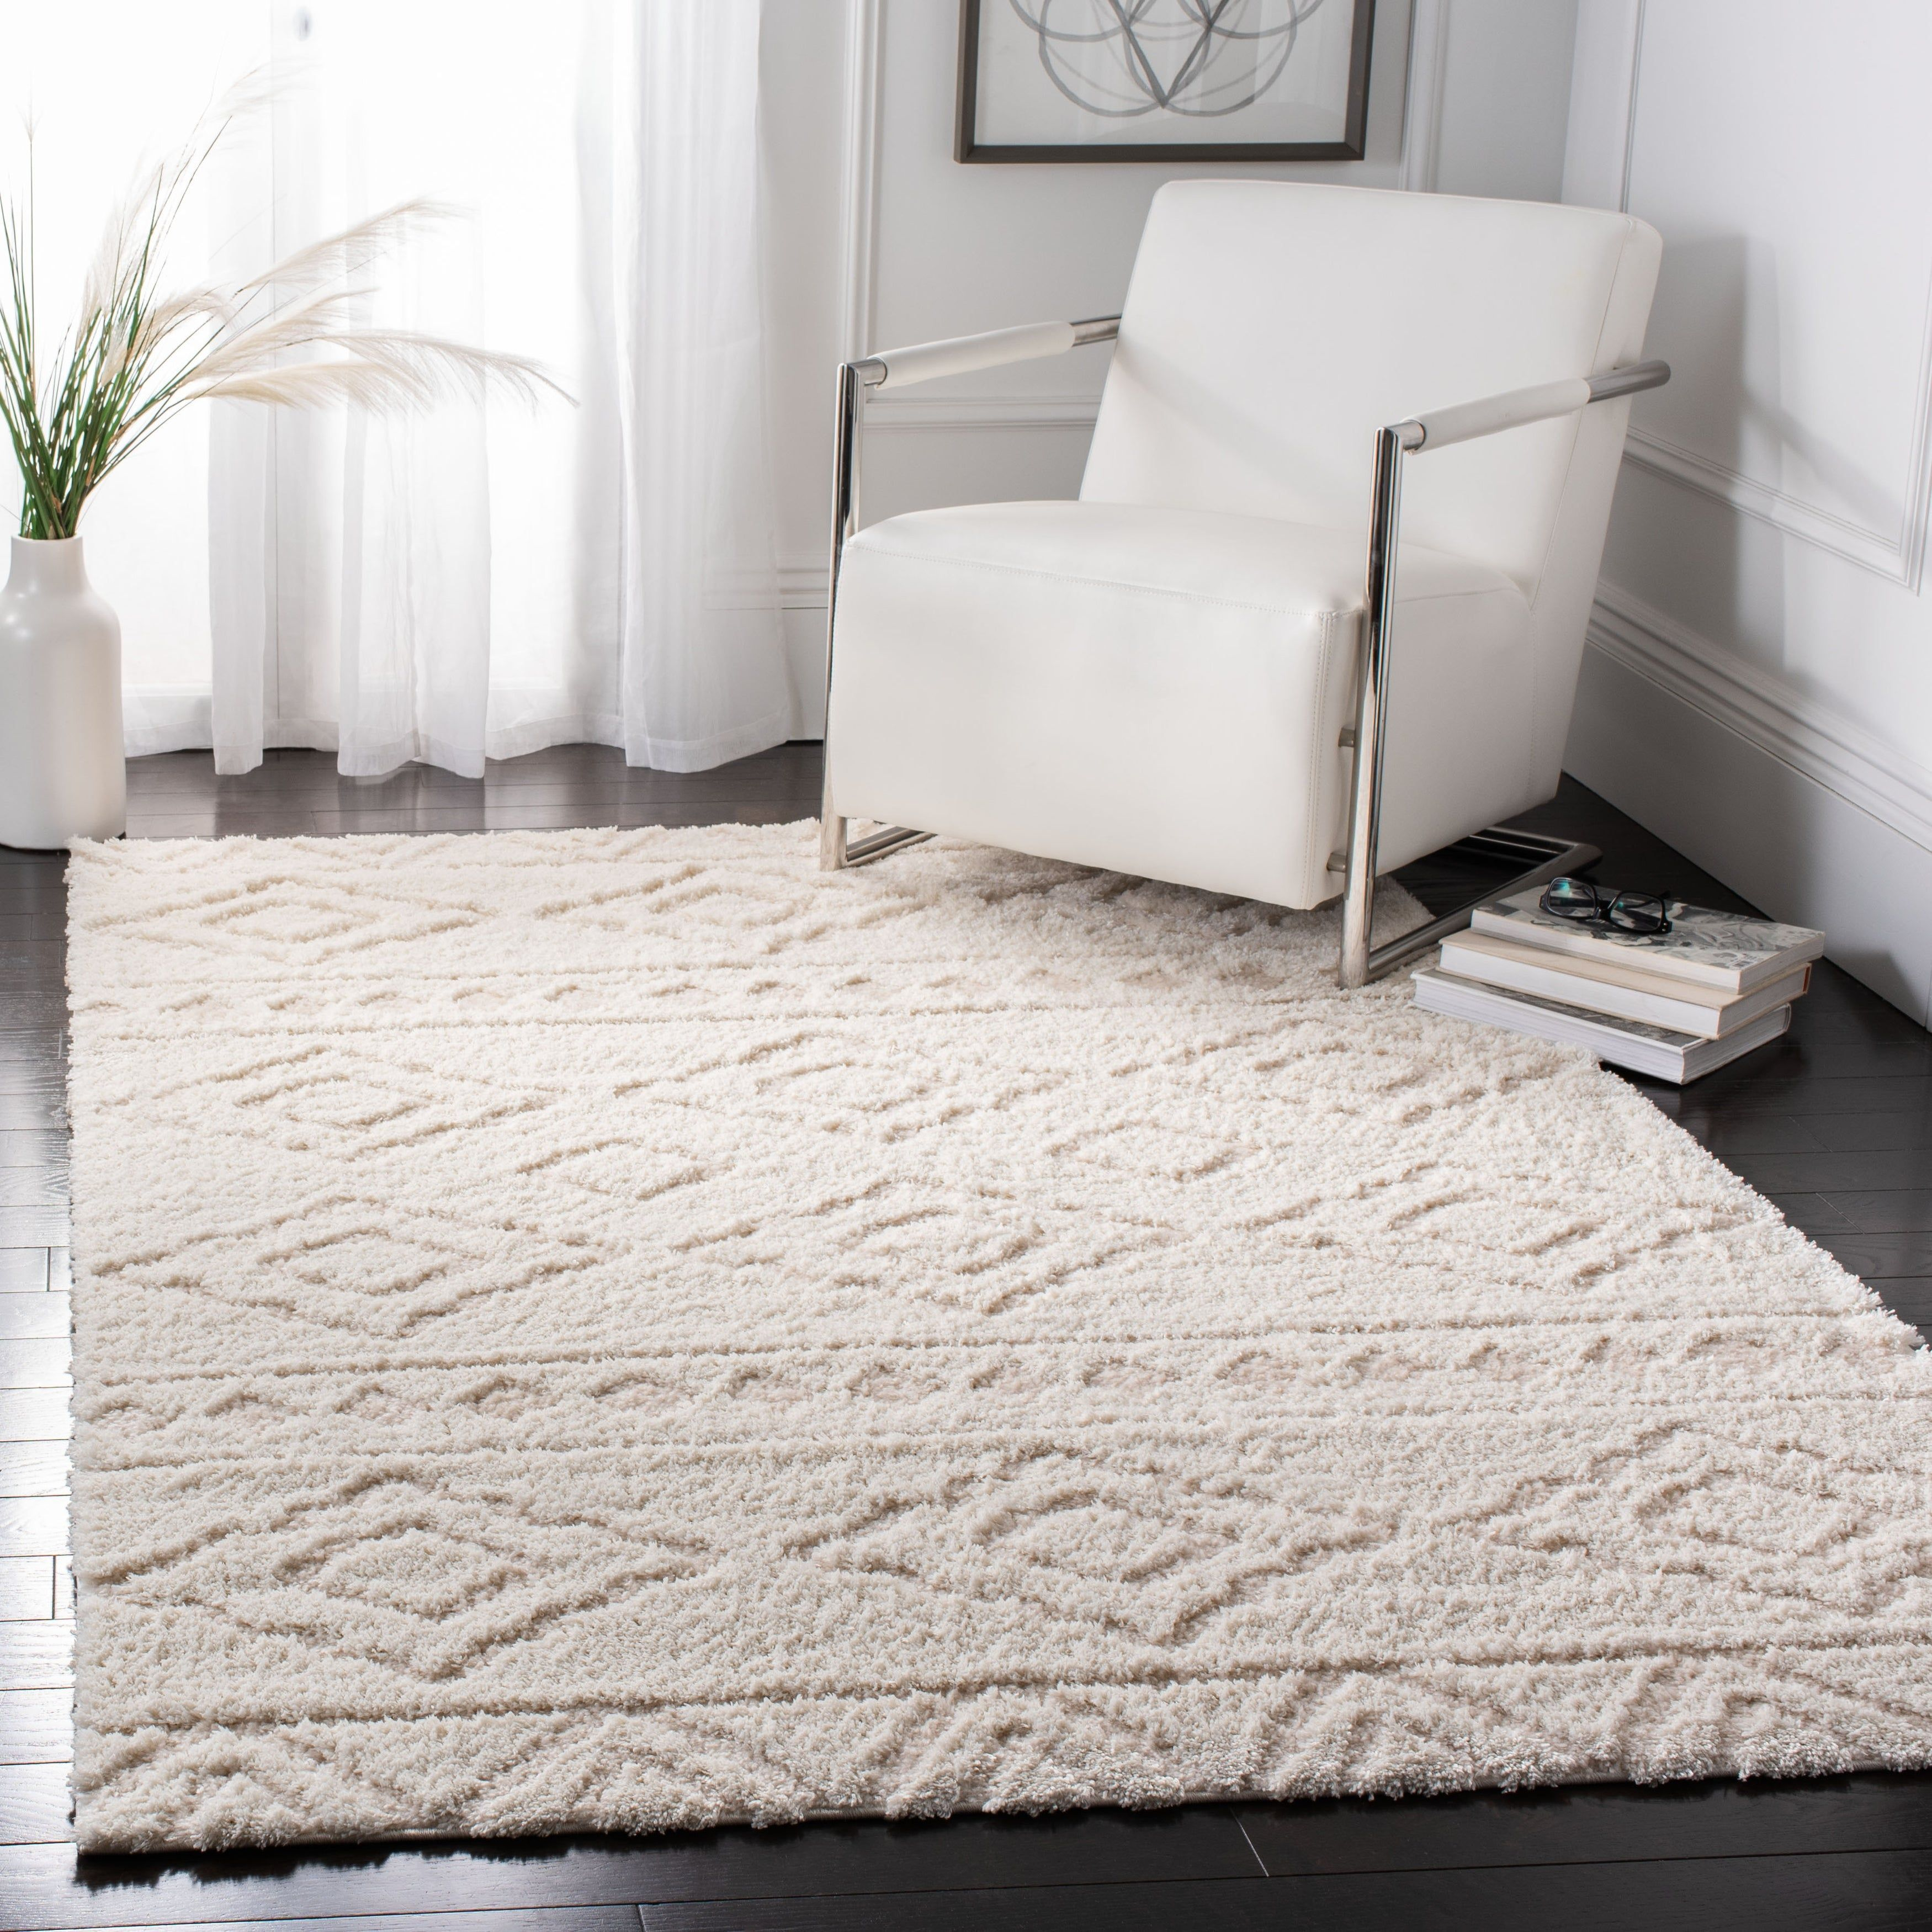 Safavieh Sparta Siomha Geometric Shag Area Rug Or Runner Walmart Com In 2020 Rugs Rug Over Carpet Polyester Rugs